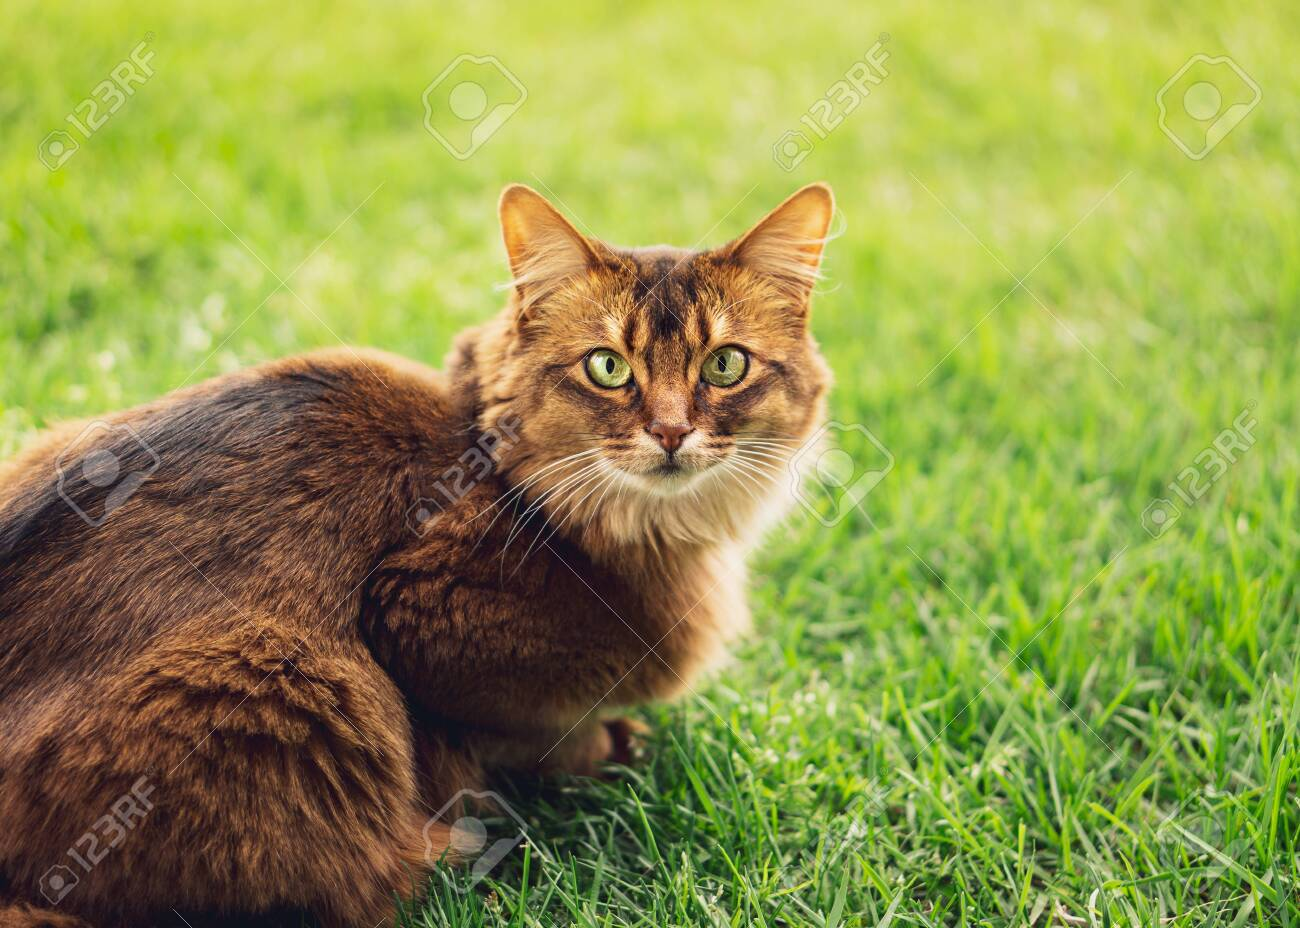 Purebred Somali Cat In The Grass Outside The Somali Cat Breed Stock Photo Picture And Royalty Free Image Image 138577131